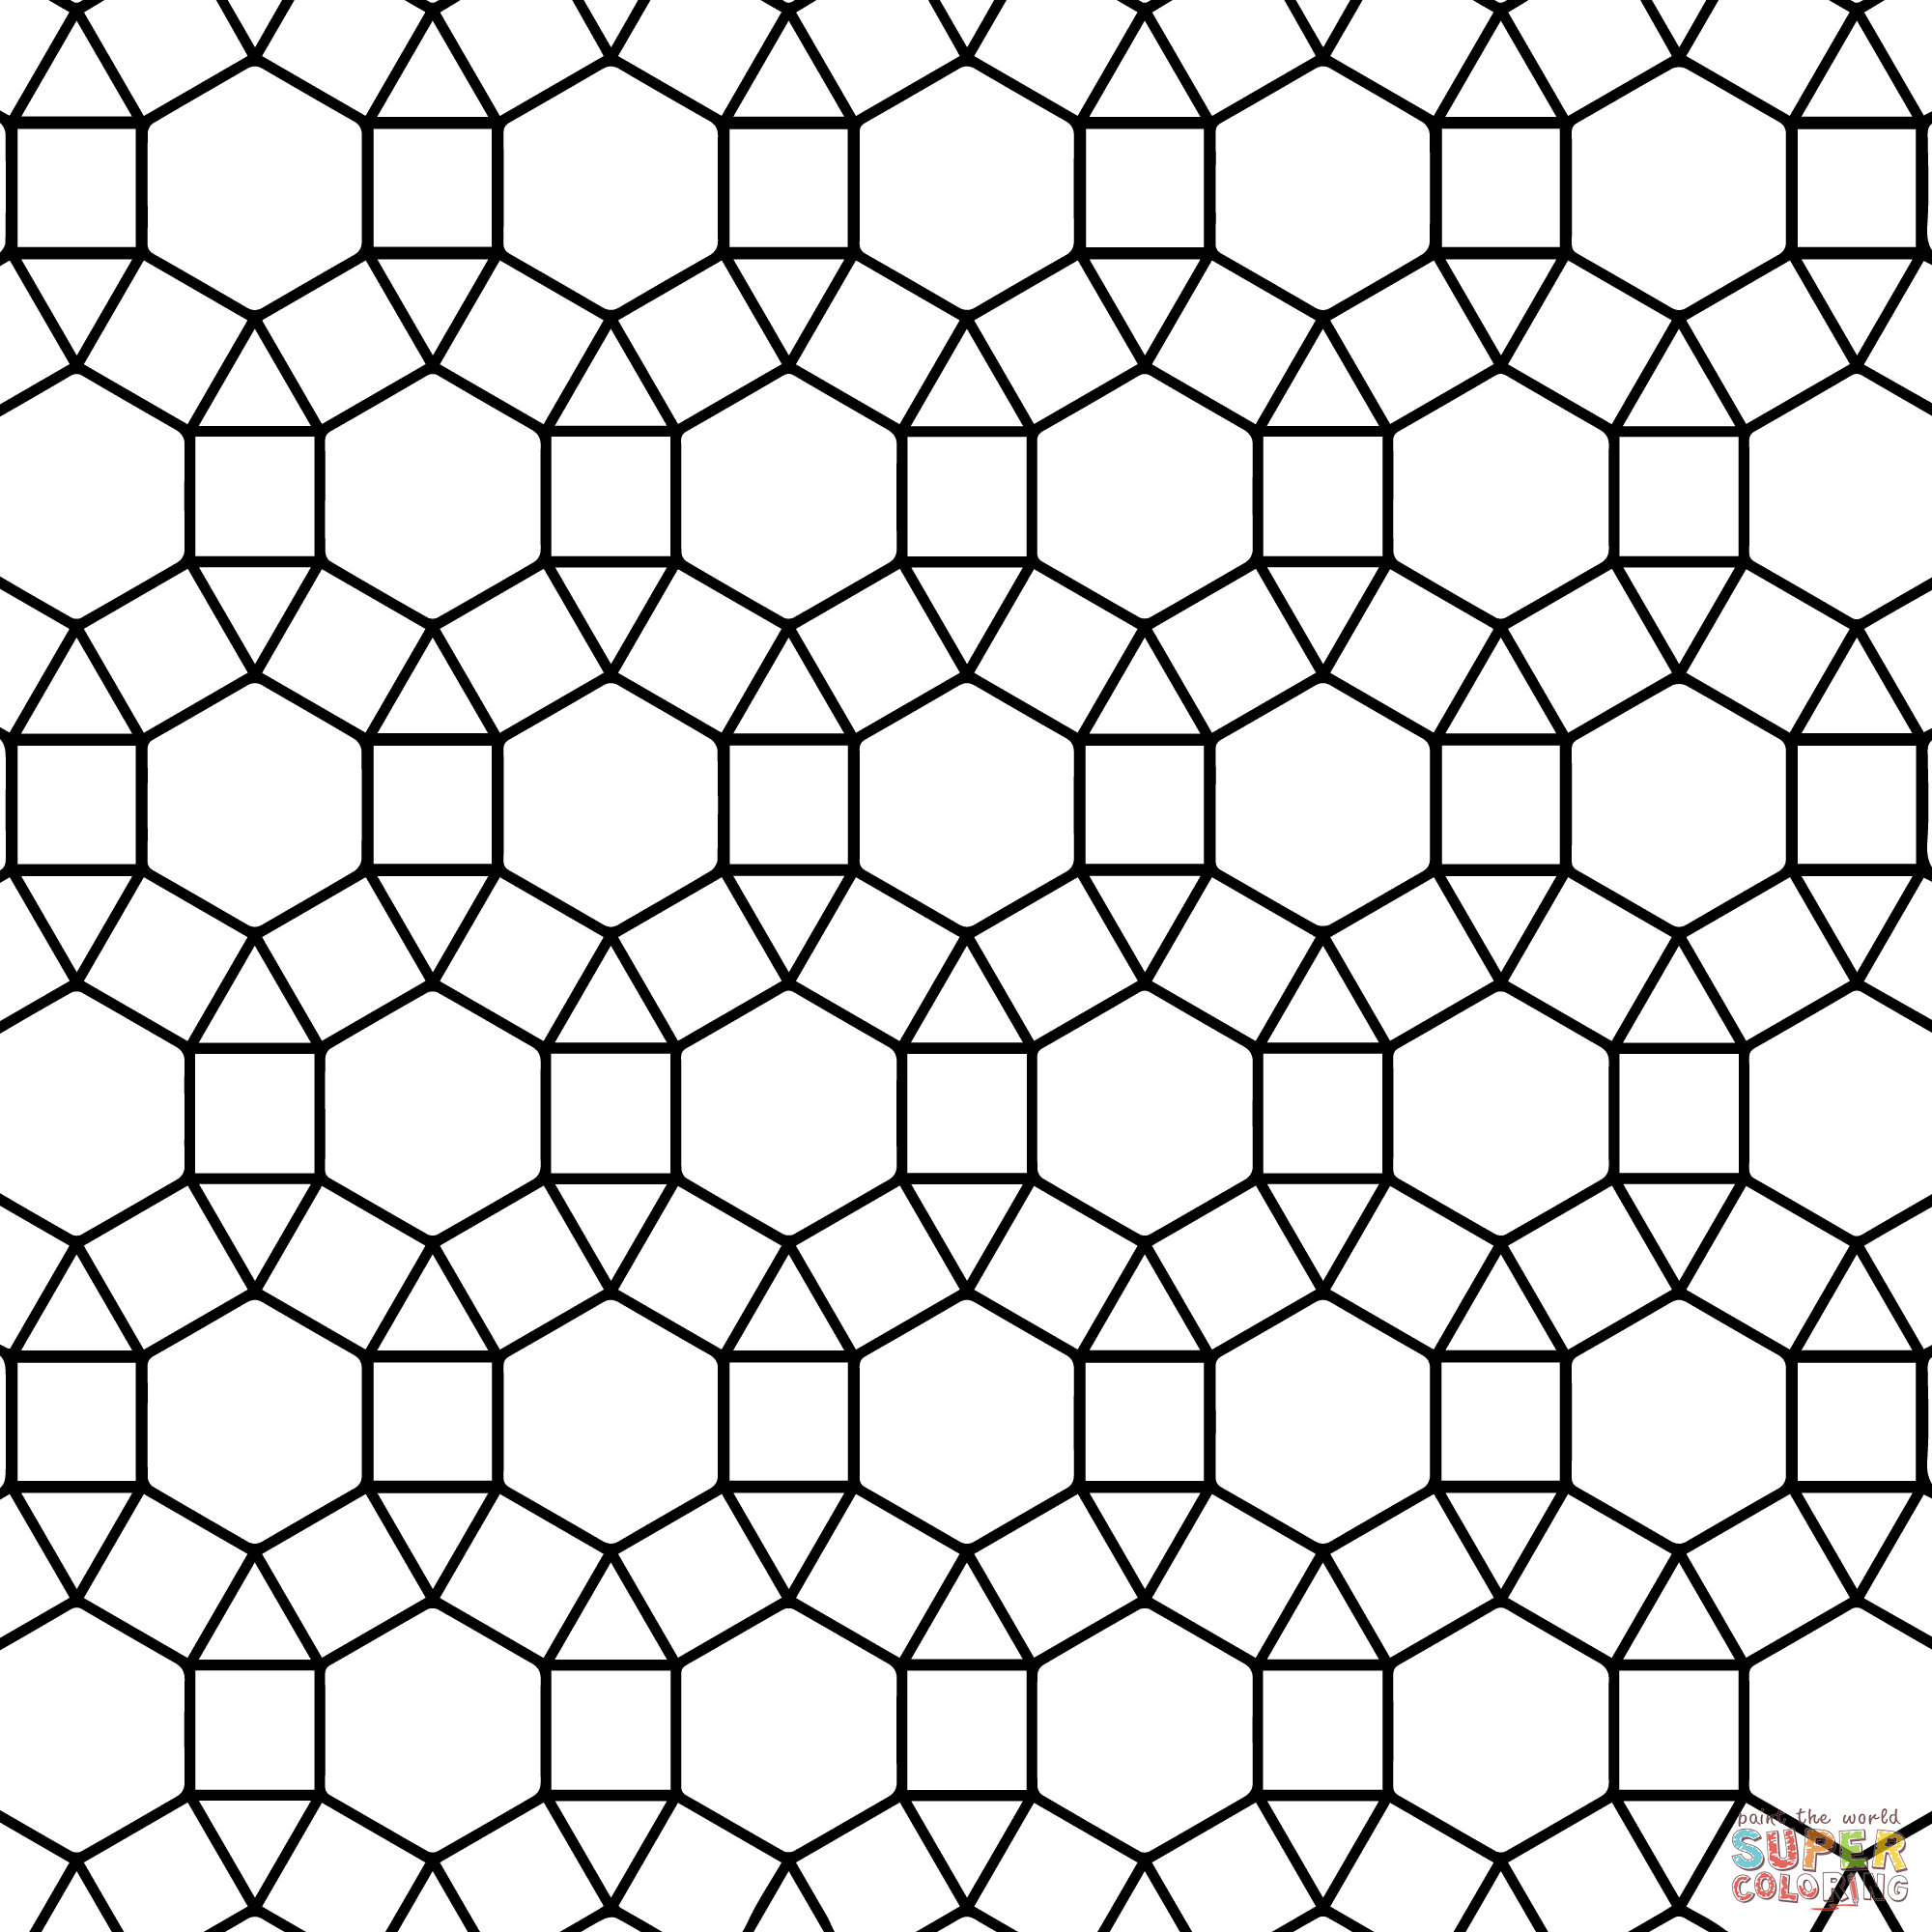 Printables Tessellation Worksheets To Color free tessellations coloring pages az tessellation with hexagon triangle and square page